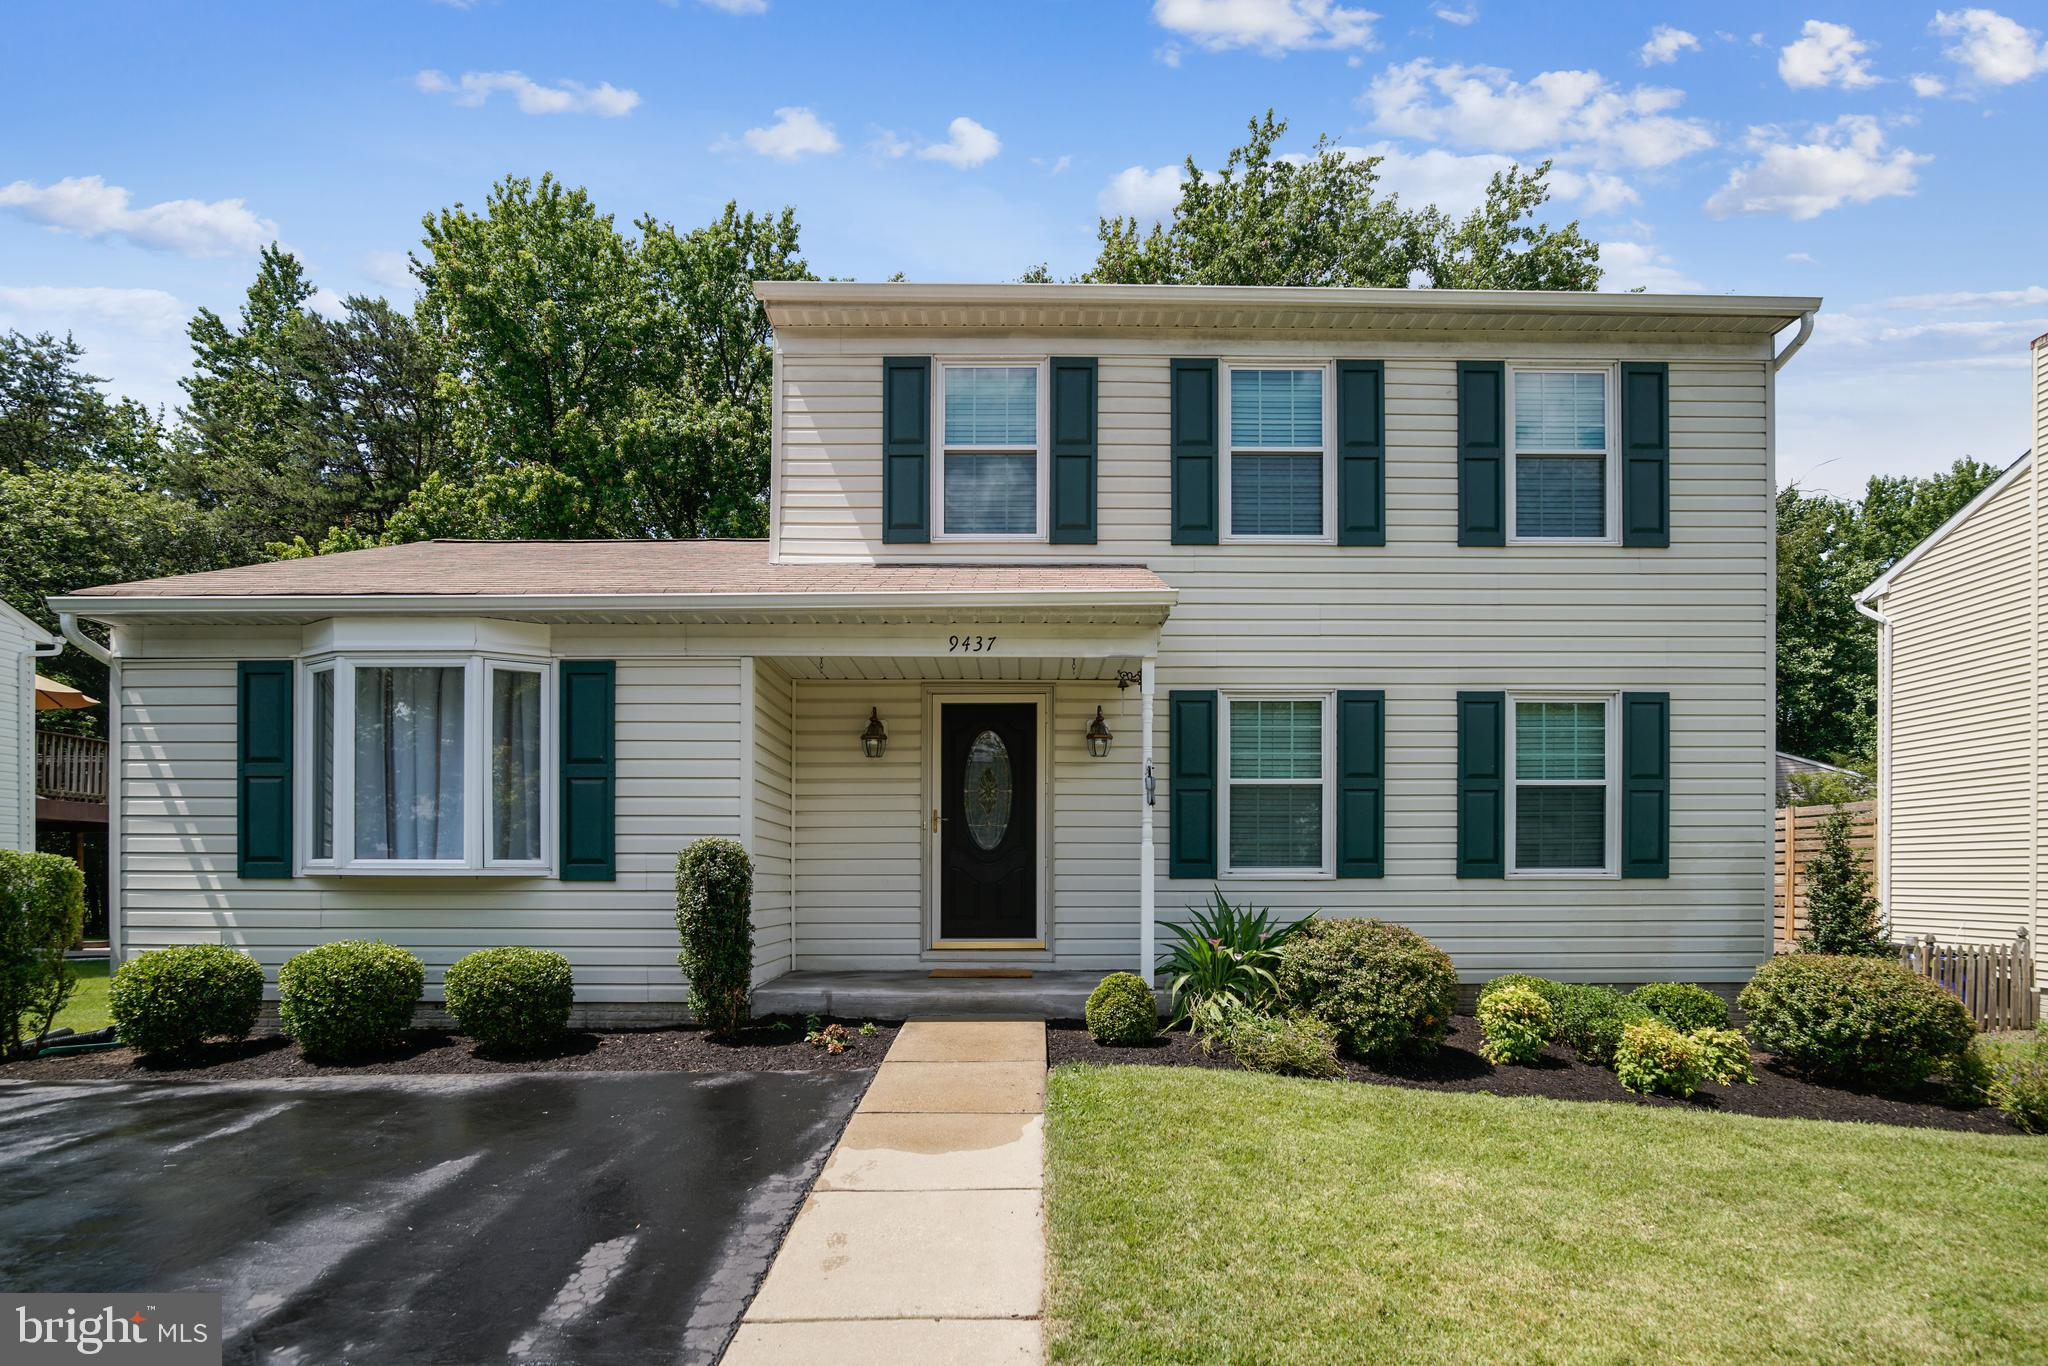 """Pride Of Ownership Is Evident! What A Home! Backs to trees and county green space. Relax on the generous size screened porch (built-2019), walk down the steps to the """"grilling patio"""" (installed-2020). Also new in 2020- Heat Pump/CAC; Washer and Dryer; W/W Carpeting on the lower level.  New in 2019-Refrigerator; Gutters and Downspouts. 2017-New Water Heater. 2014-Kitchen New Cabinet Design and Remodeled. 2013-Remodeled Basement Family Room and Laundry Room. 2010-New Driveway and Sidewalk. 2009-New Windows Installed in Whole House. 2008-Interior Doors replaced in Whole House. 2007-Replace Roof; Dining Room Remodeled; Security System installed. 2006-Primary Bedroom and Primary Bathroom remodeled. 2004- Family Room remodeled; main level Half Bath remodeled; Bay Window installed; Peller Stove and Hearth installed; Foyer expanded and remodeled. 2003-Upper Level Hall Bath remodeled and added a Jacuzzi Tub. Other interior features include built-ins, crown mold, chair rail, wainscoting.  Exterior features include newer exterior doors, professional landscaping, 2 storage sheds."""